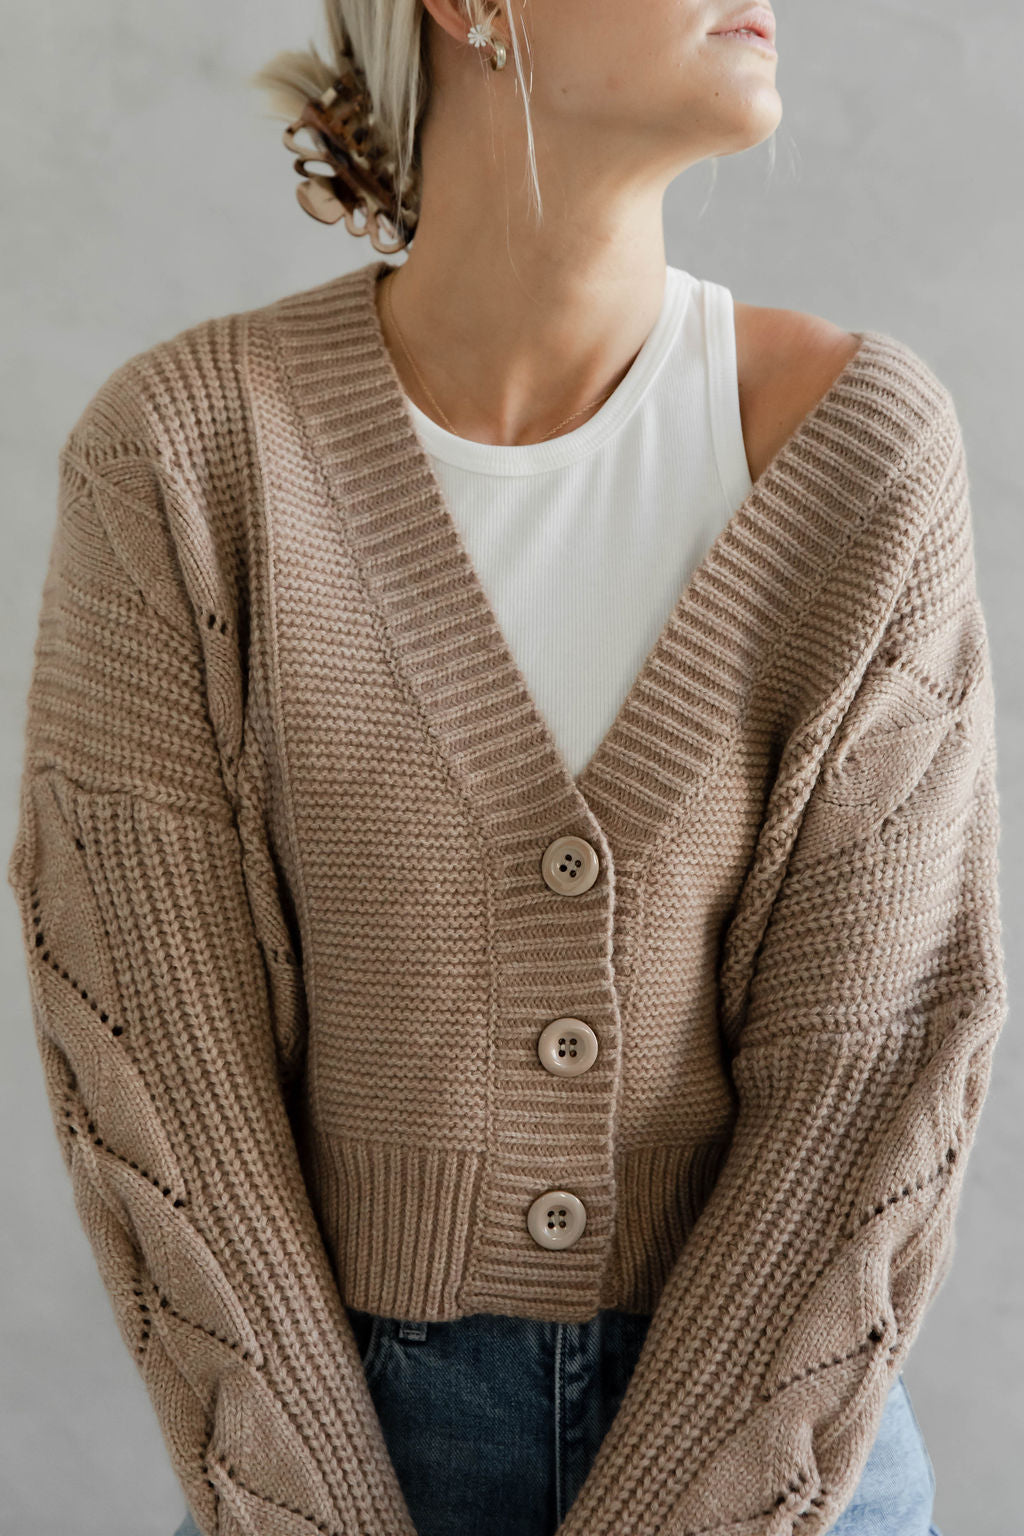 The Pointelle Sweater